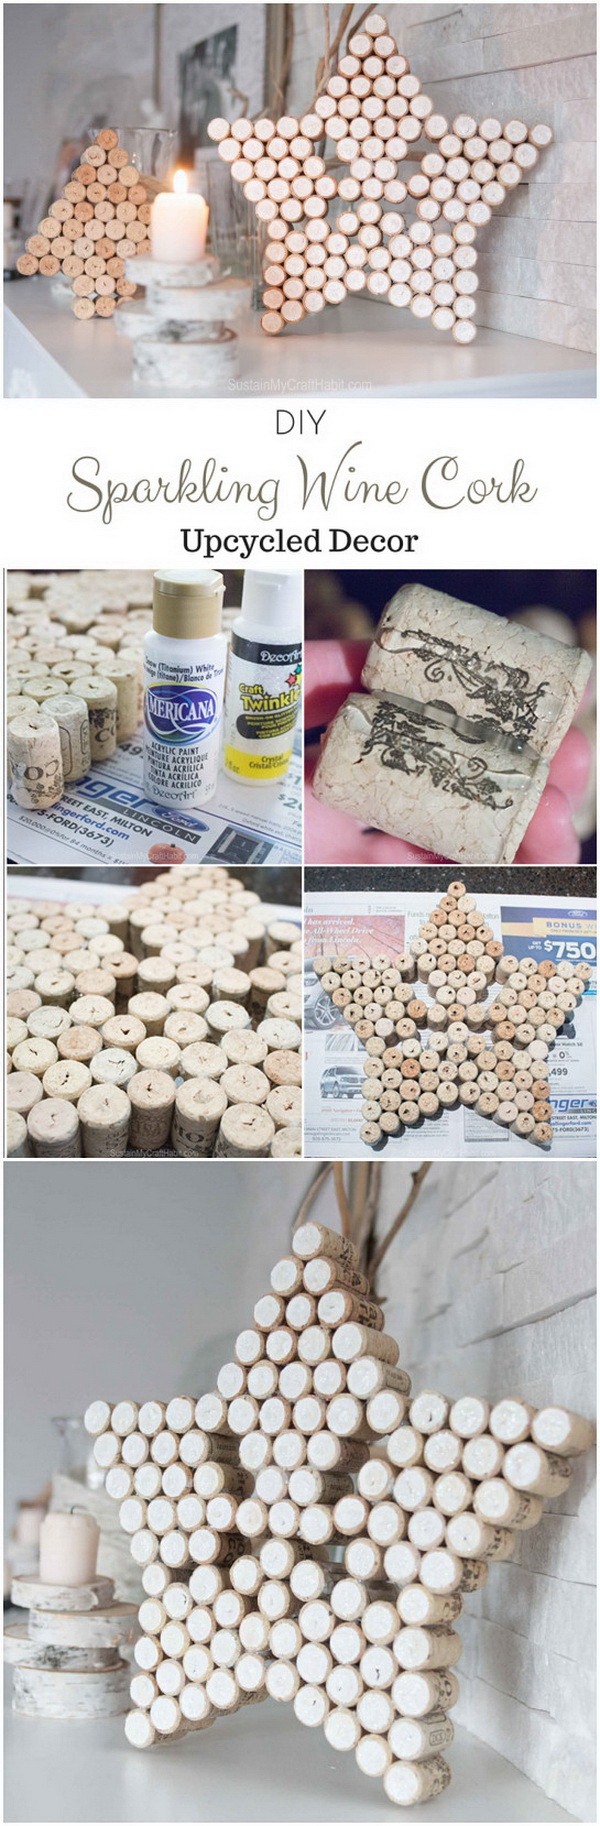 Sparkling Wine Cork Star Decor.